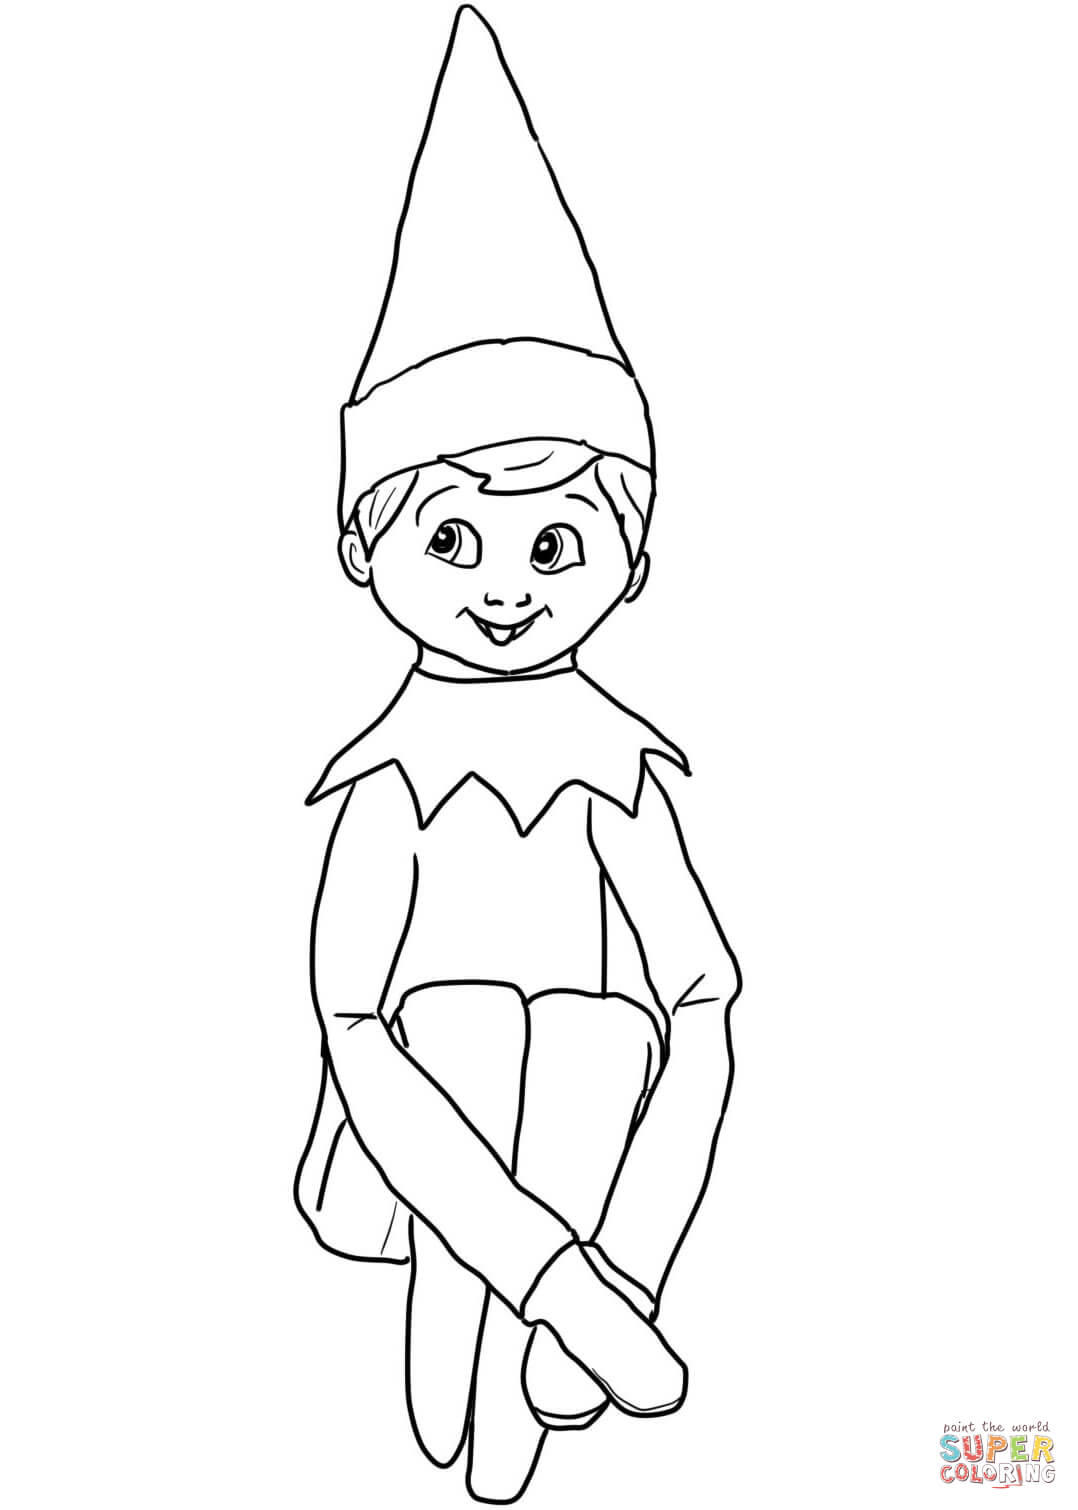 Christmas Elves Coloring Pages Printable With Elf On Shelf Page Free